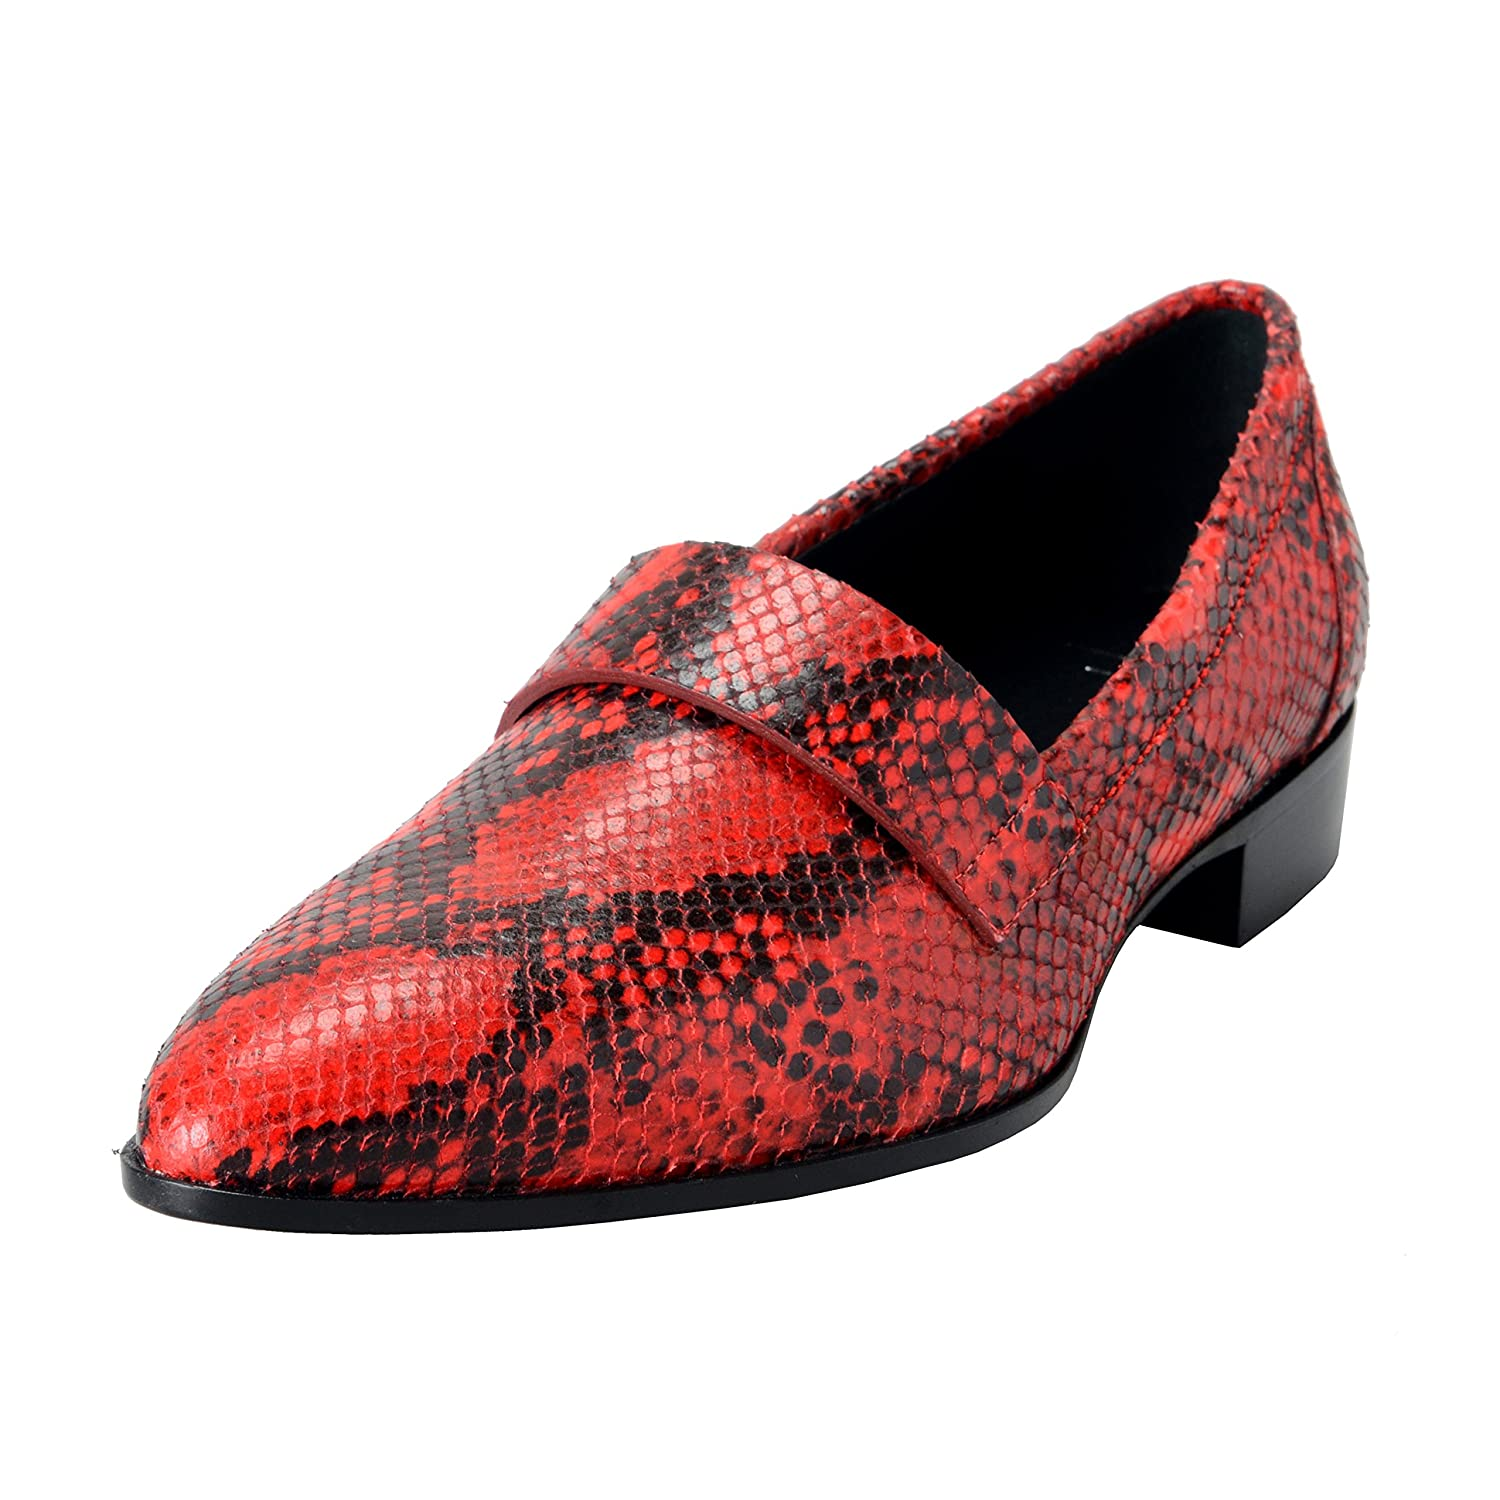 Homme Men's Python Skin Red Leather Dress Loafers Shoes